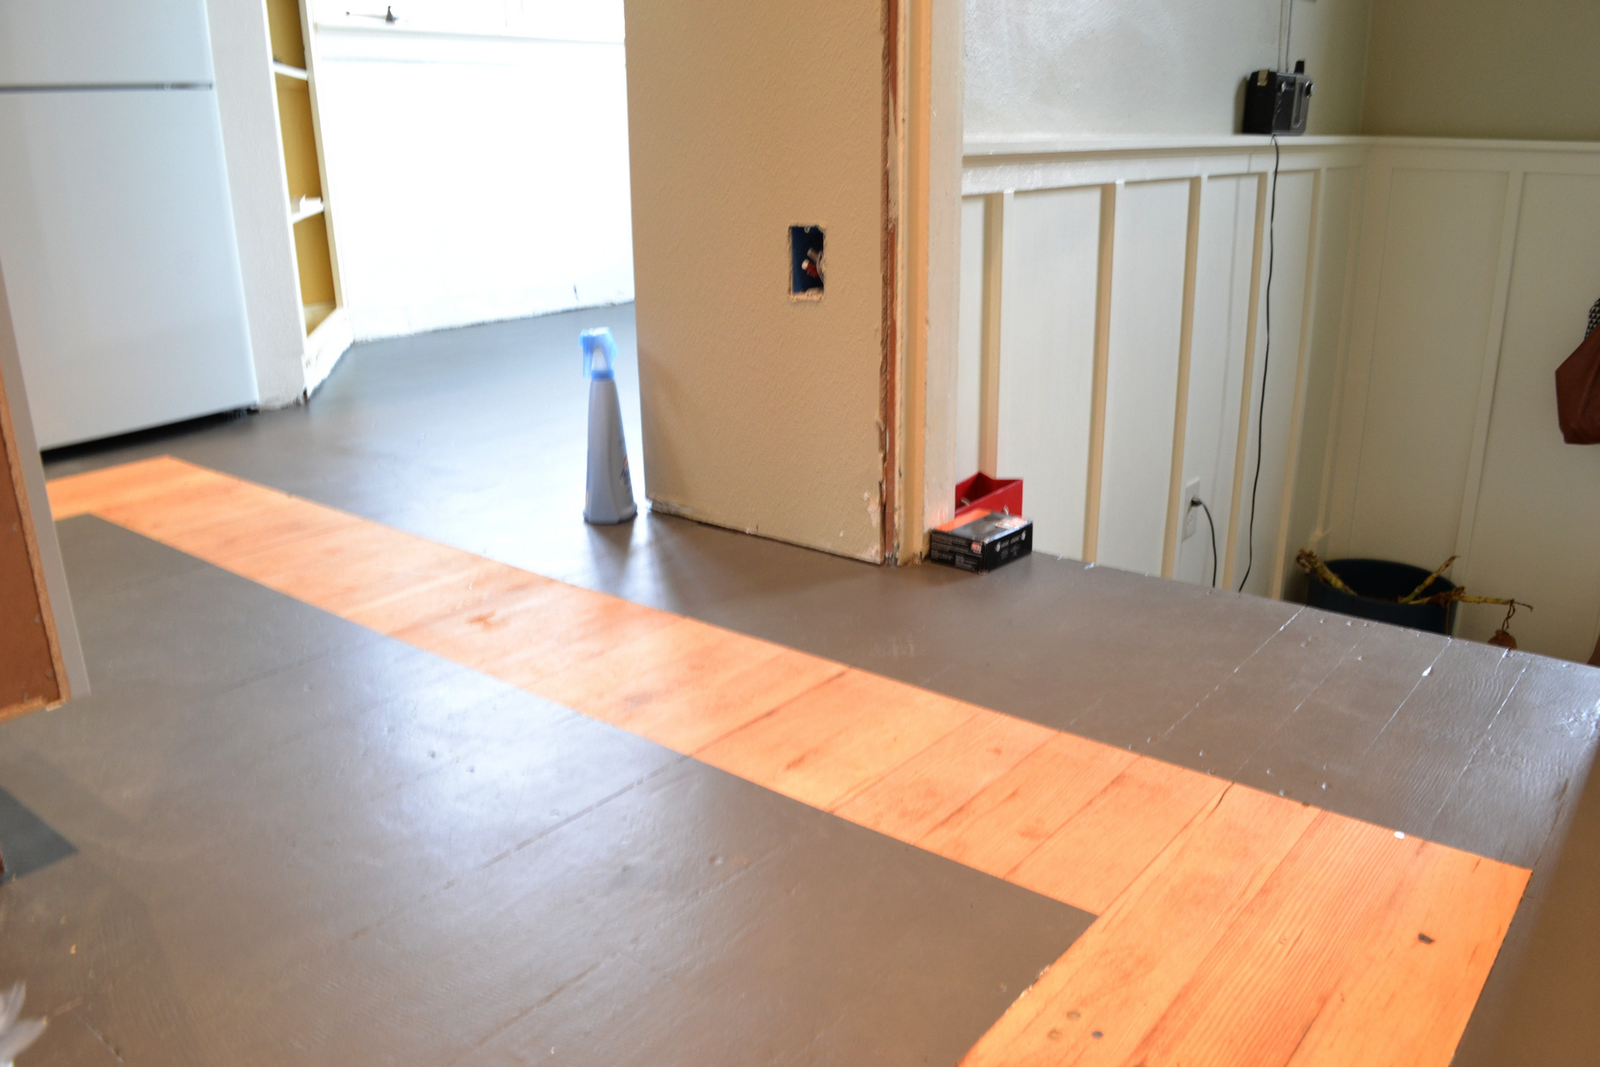 A Home In The Making Renovate How To Paint A Kitchen Floor